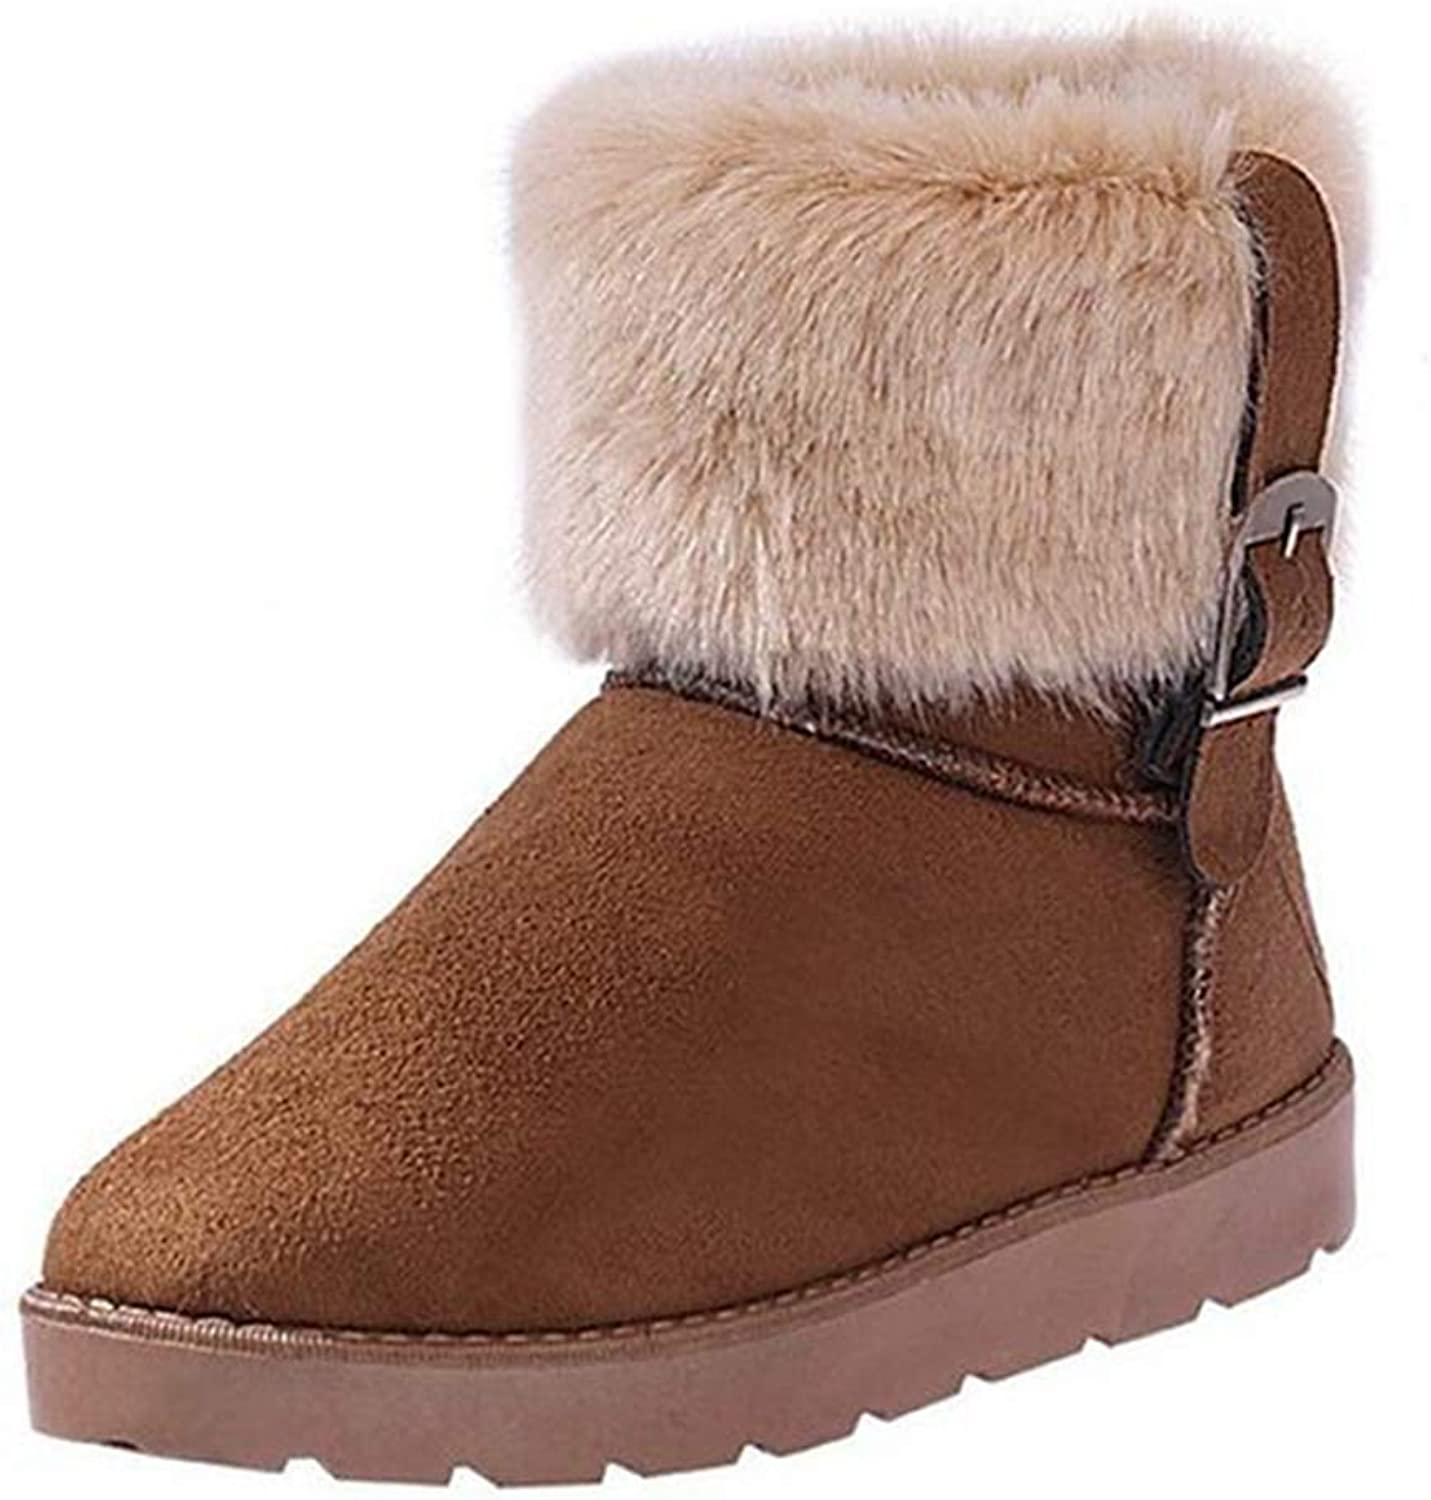 Fay Waters Womens Warm Short Cotton Boots Buckle Furry Flat Heel Slip On Round Toe Snow Ankle Booties